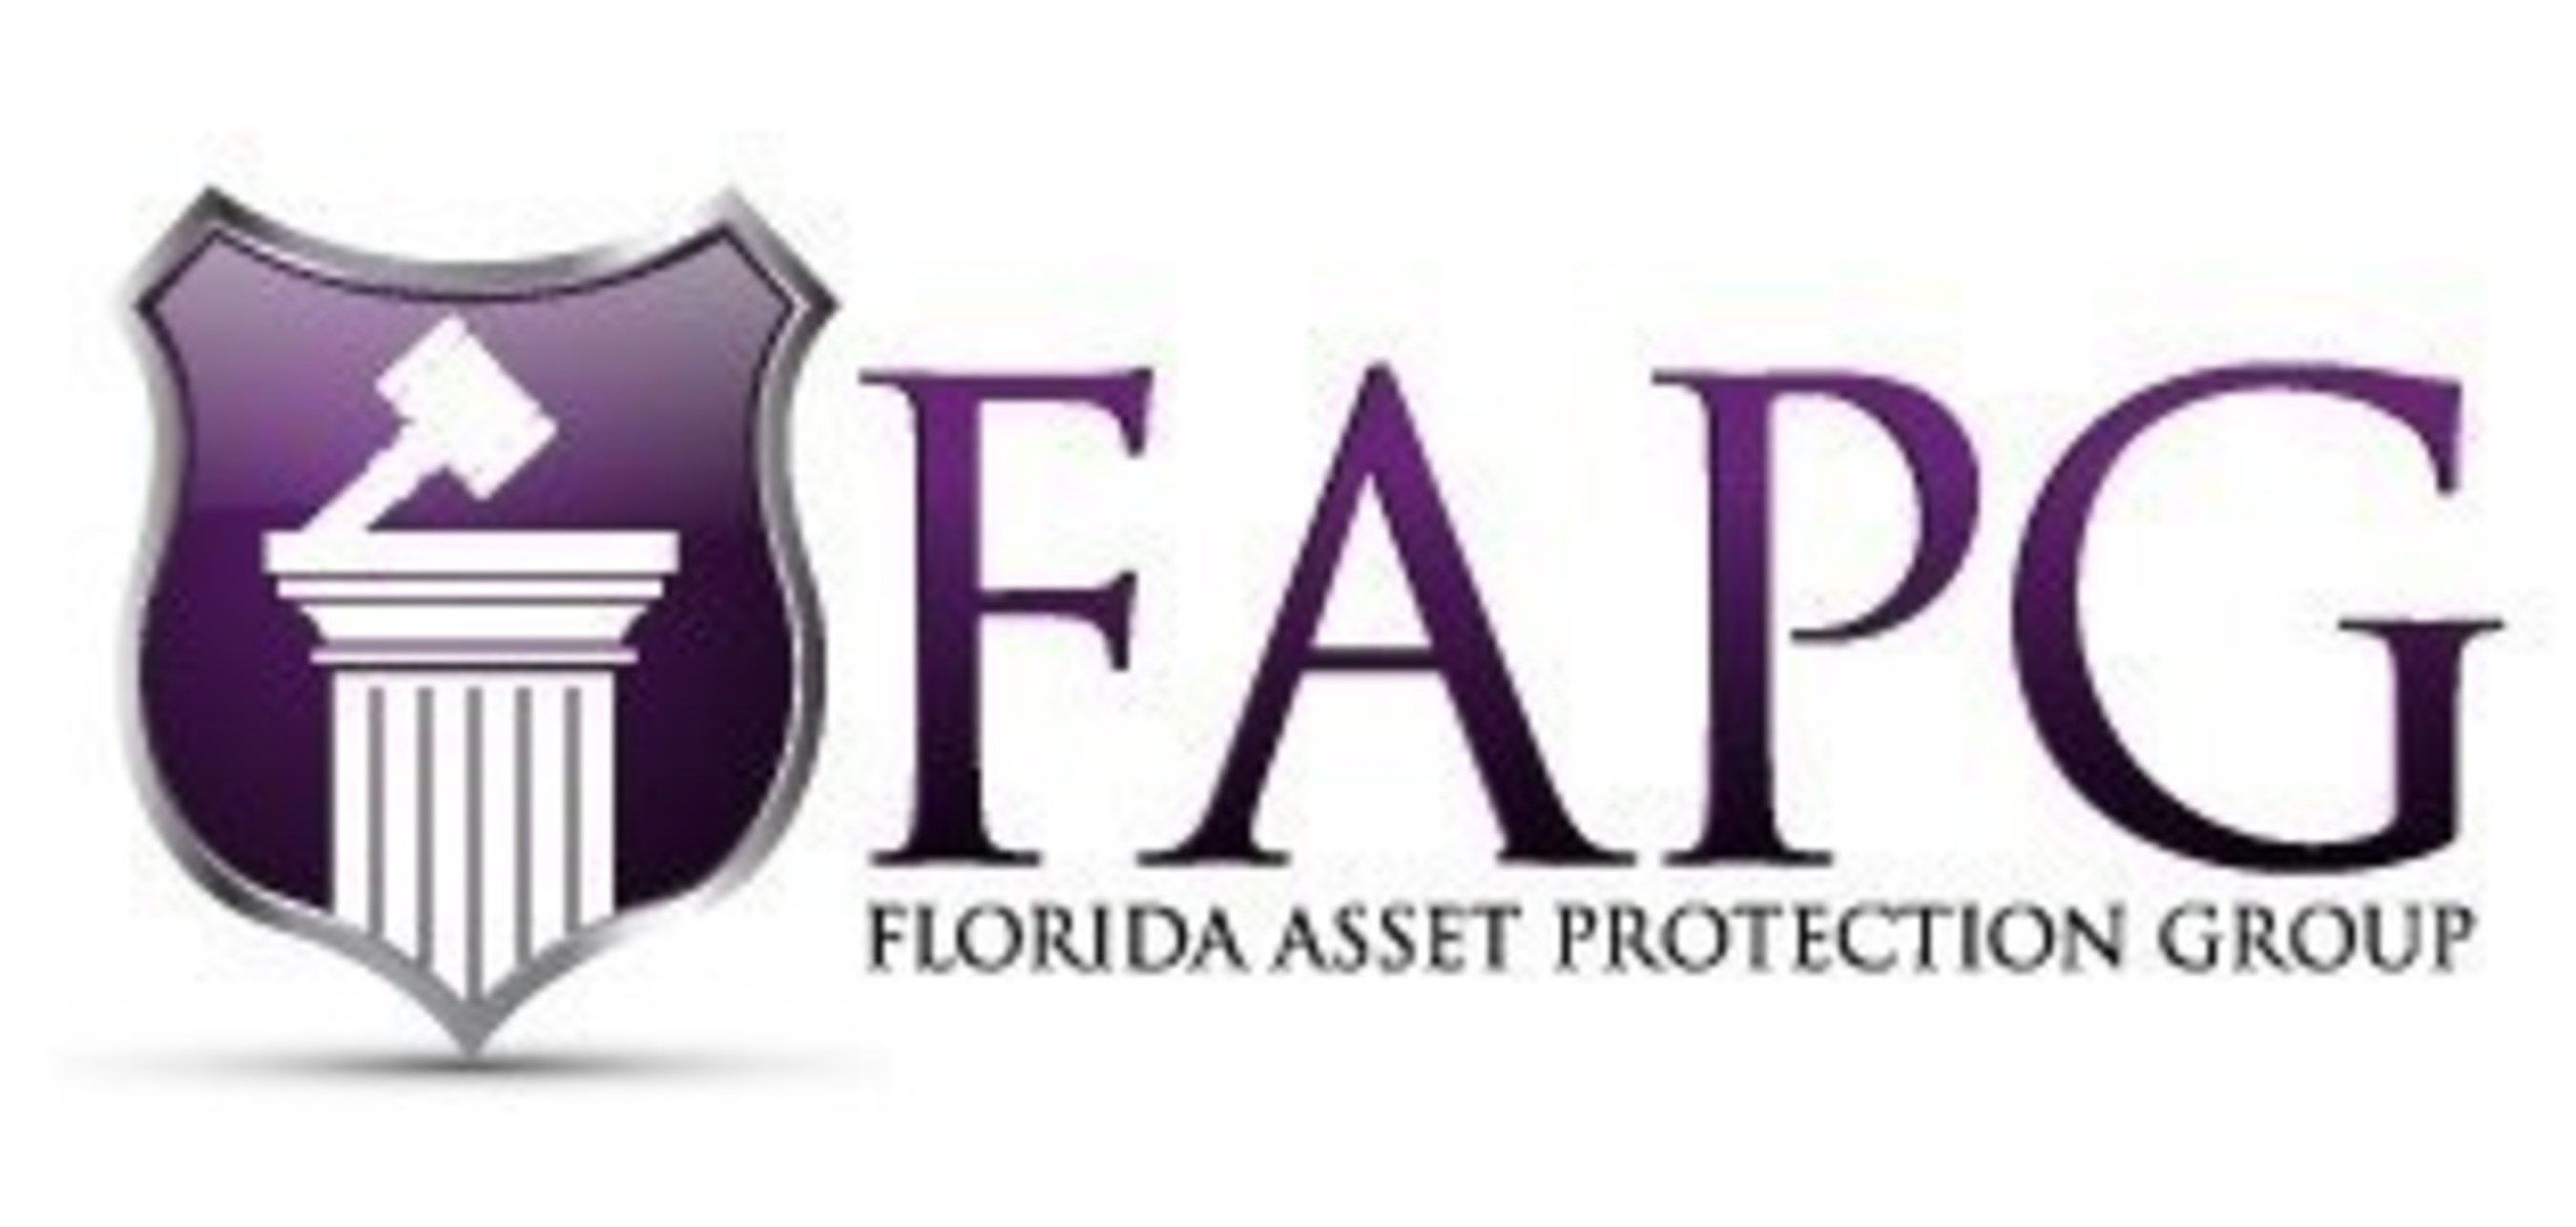 Florida Asset Protection Group South Florida Specialists in Foreclosure and Pre-forclosure Issues